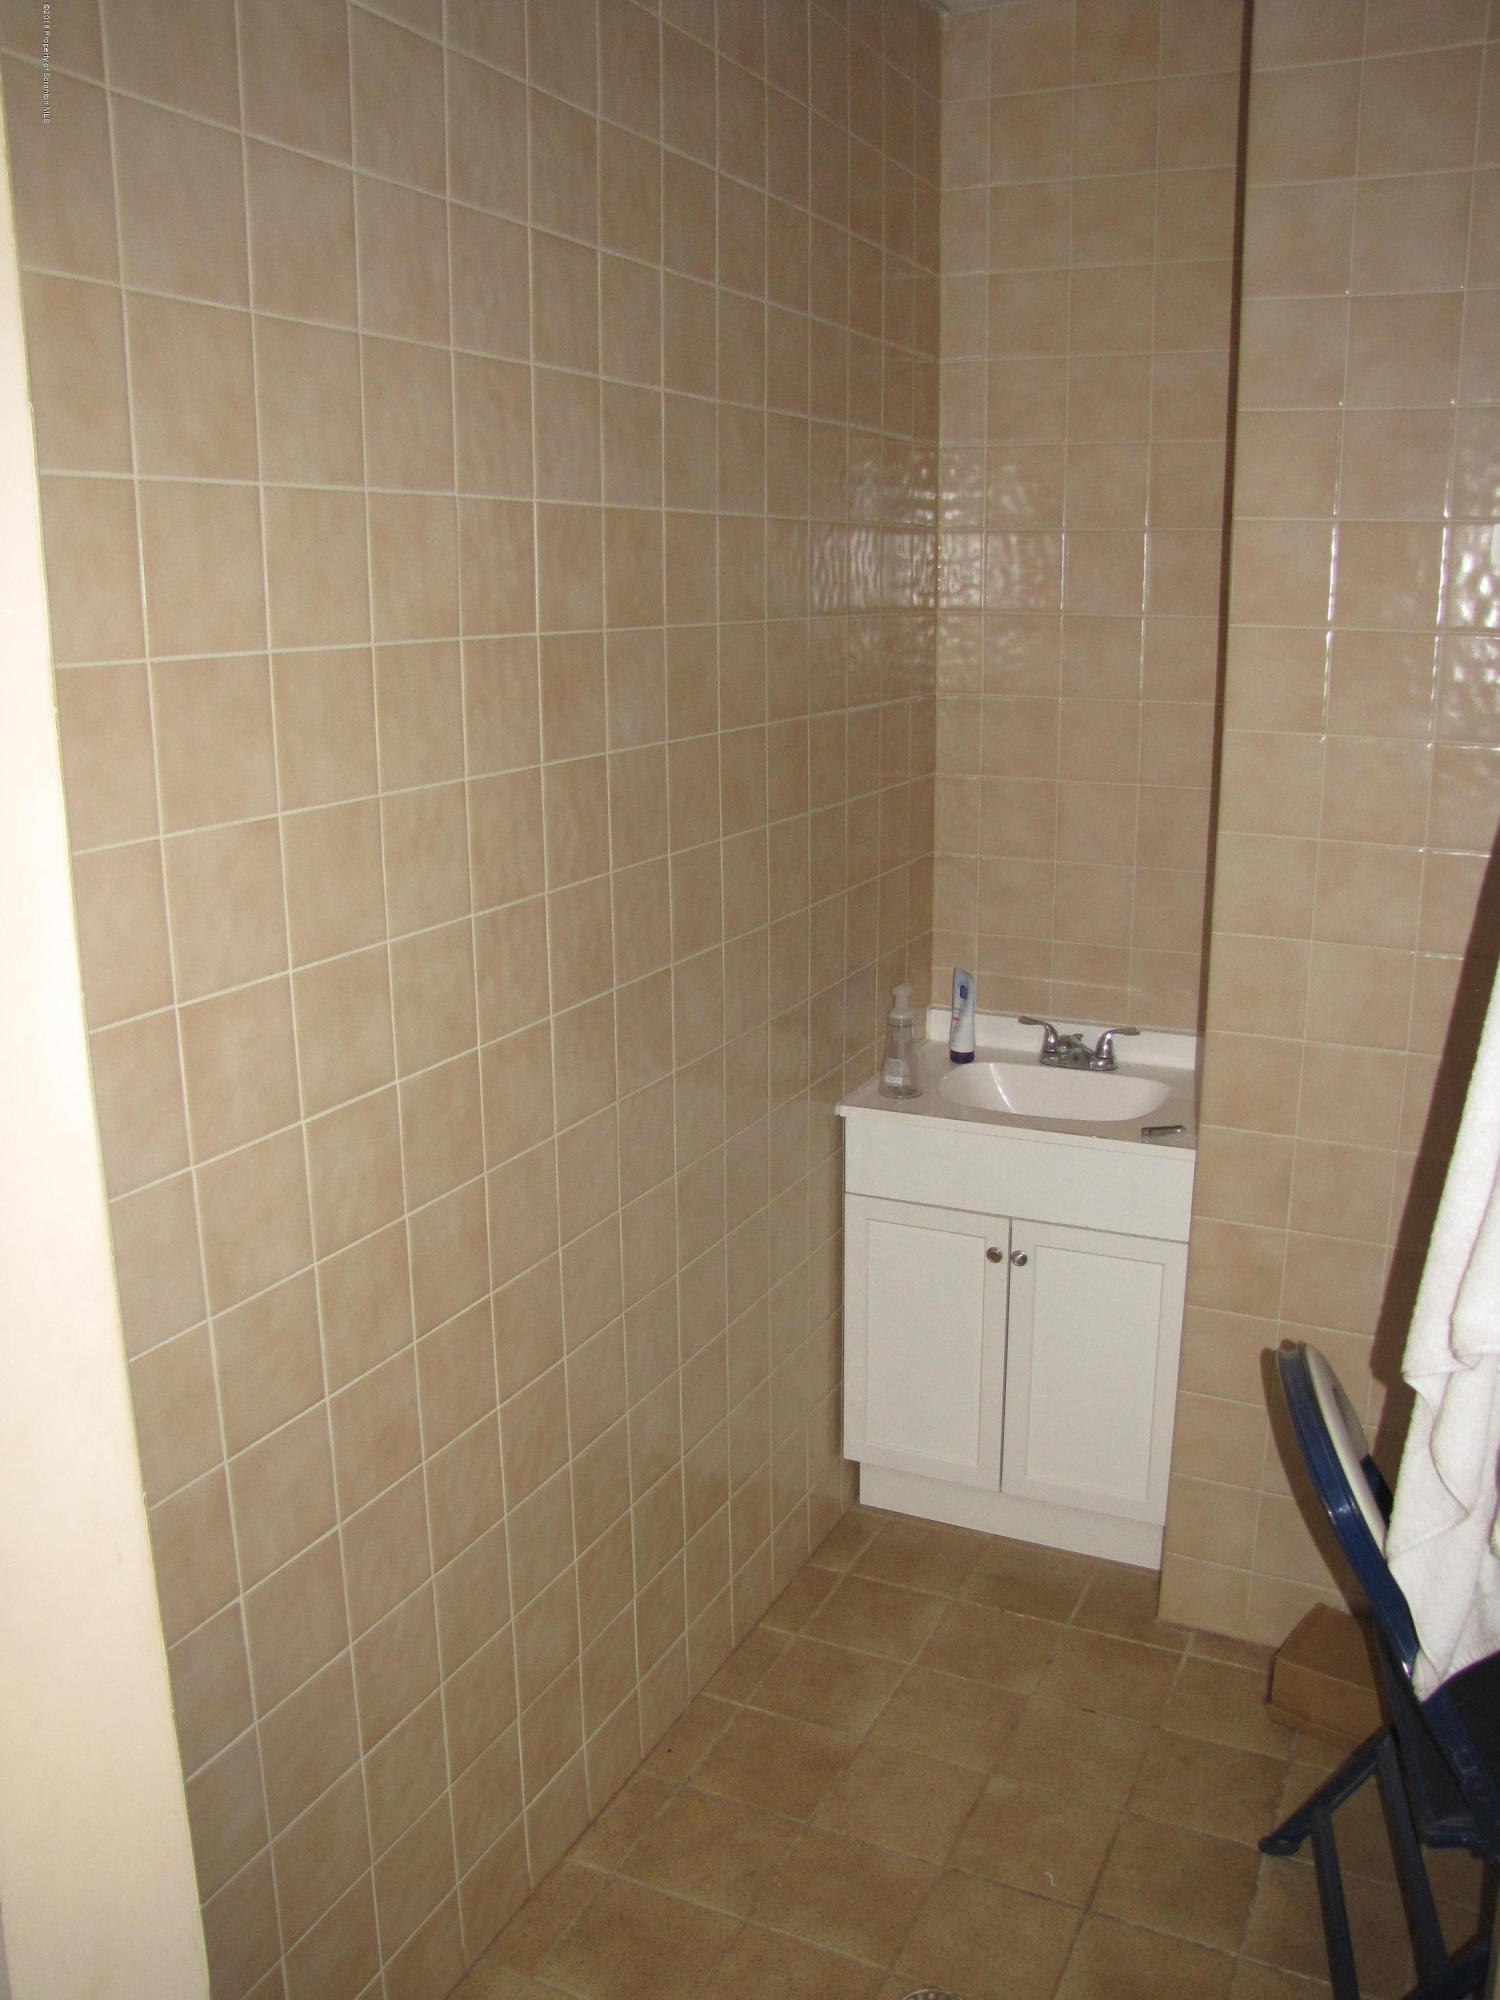 800 James Ave, Scranton, Pennsylvania 18510, ,1 BathroomBathrooms,Commercial,For Lease,James,18-5079